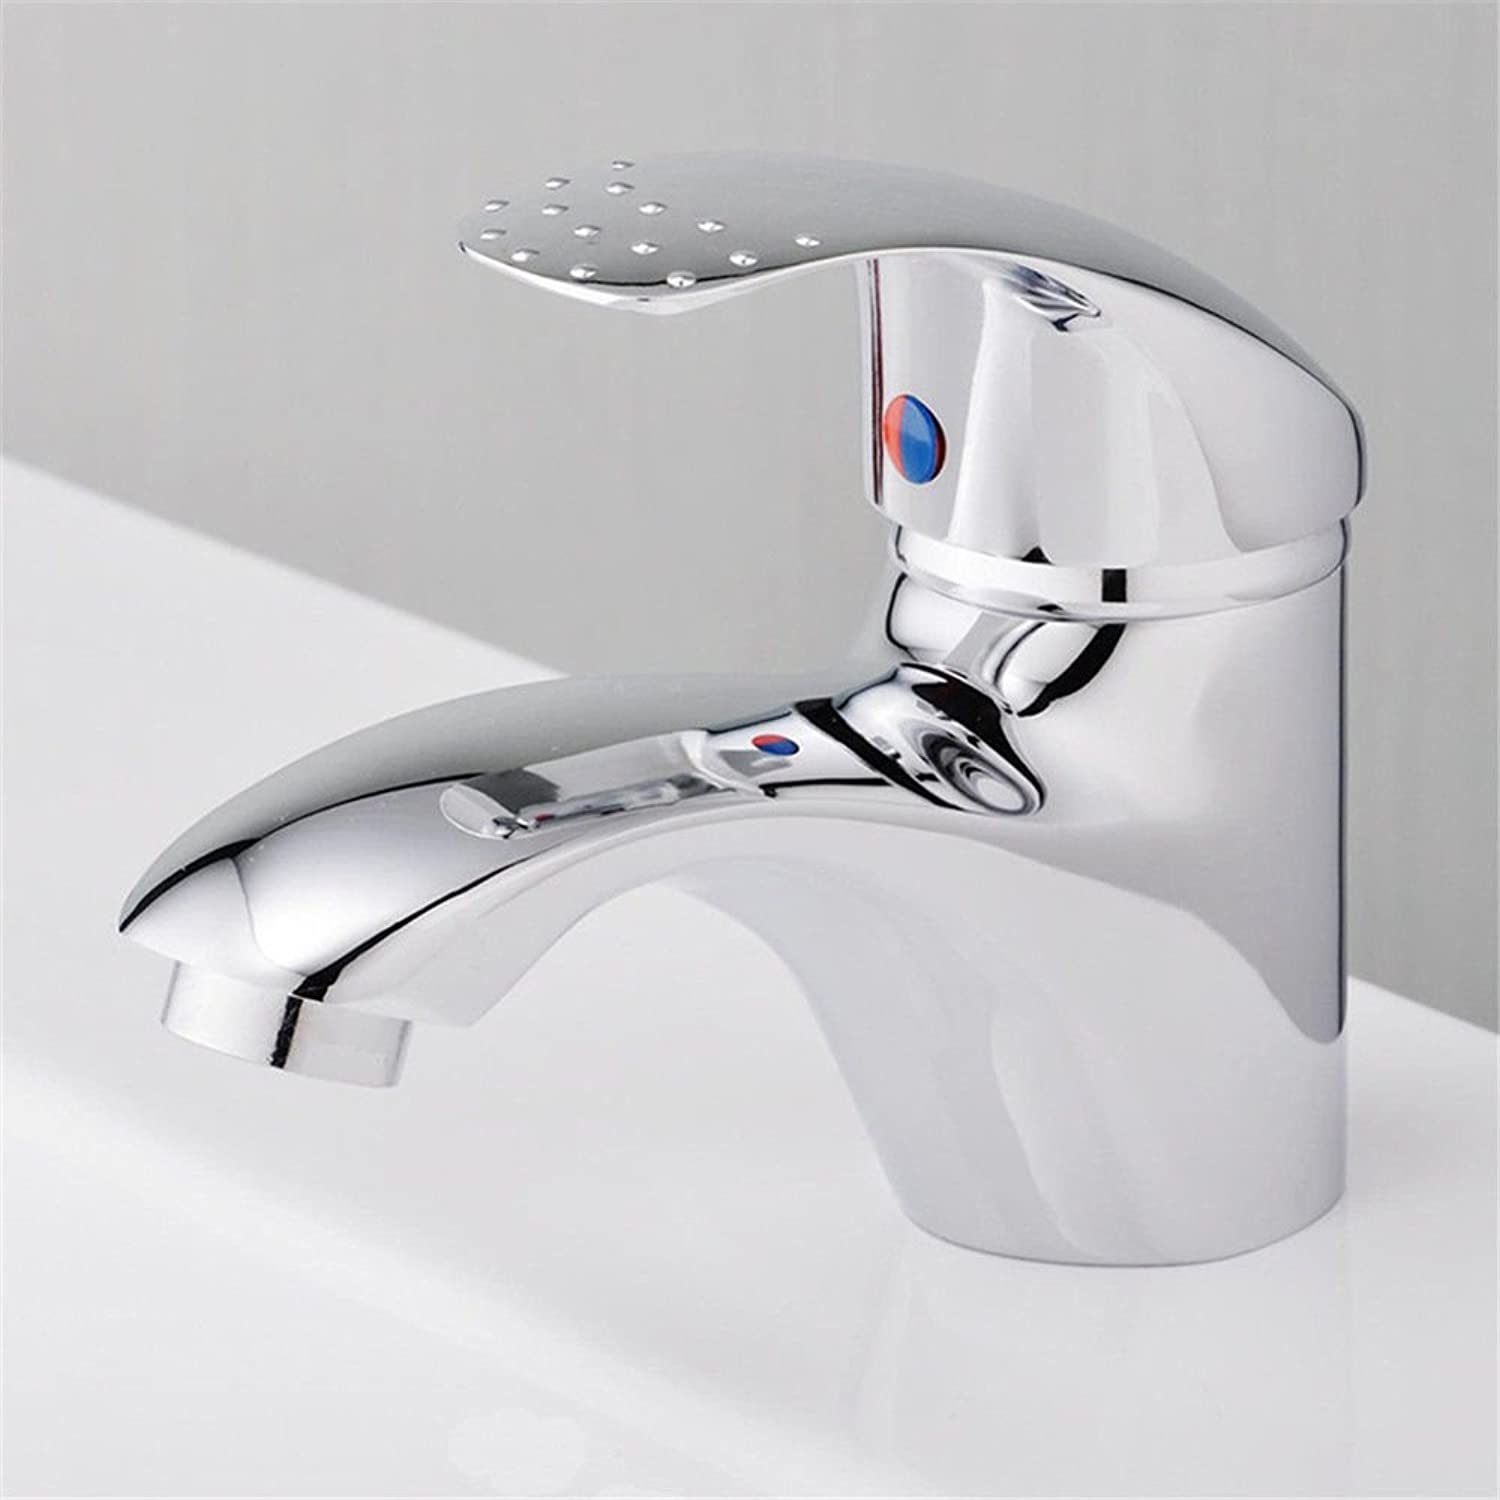 Gyps Faucet Basin Mixer Tap Waterfall Faucet Antique Bathroom Mixer Bar Mixer Shower Set Tap antique bathroom faucet The stylish aluminum alloy handle washing dishes in a single-TAP-TAP the copper off